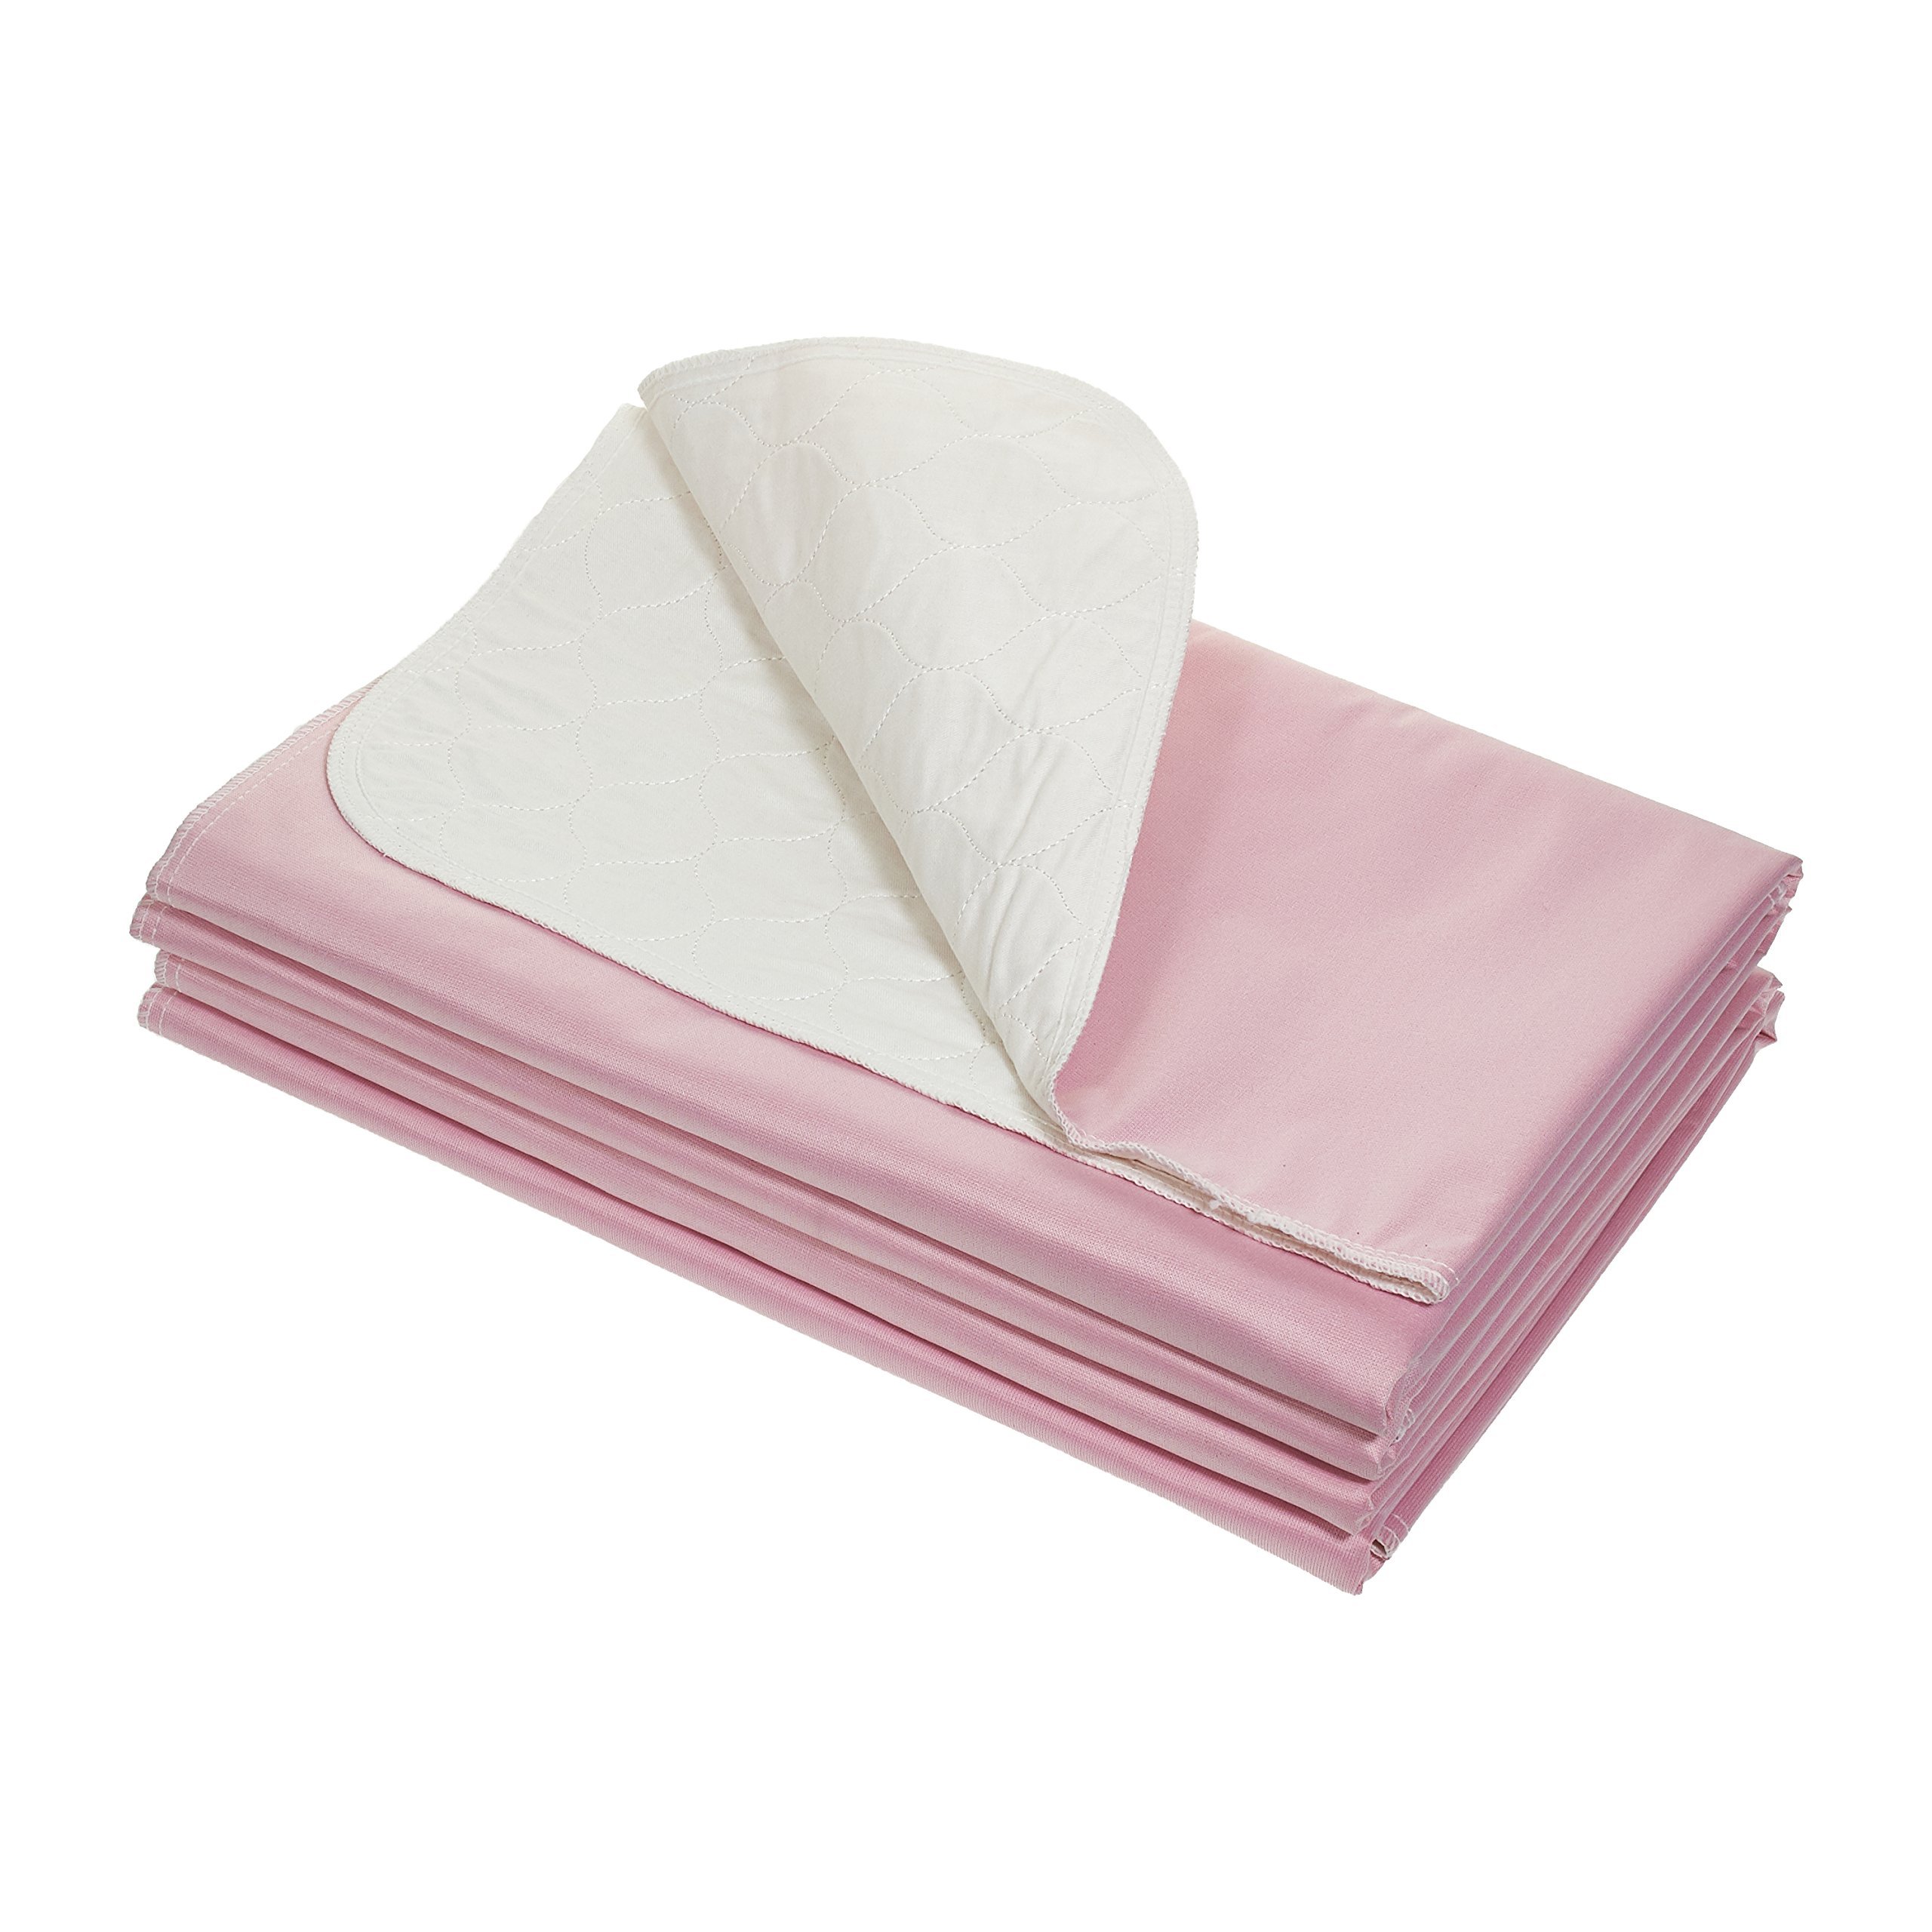 Reusable Bedpad, Pack of 4 Pink Washable Underpads 34''x36'' (4)